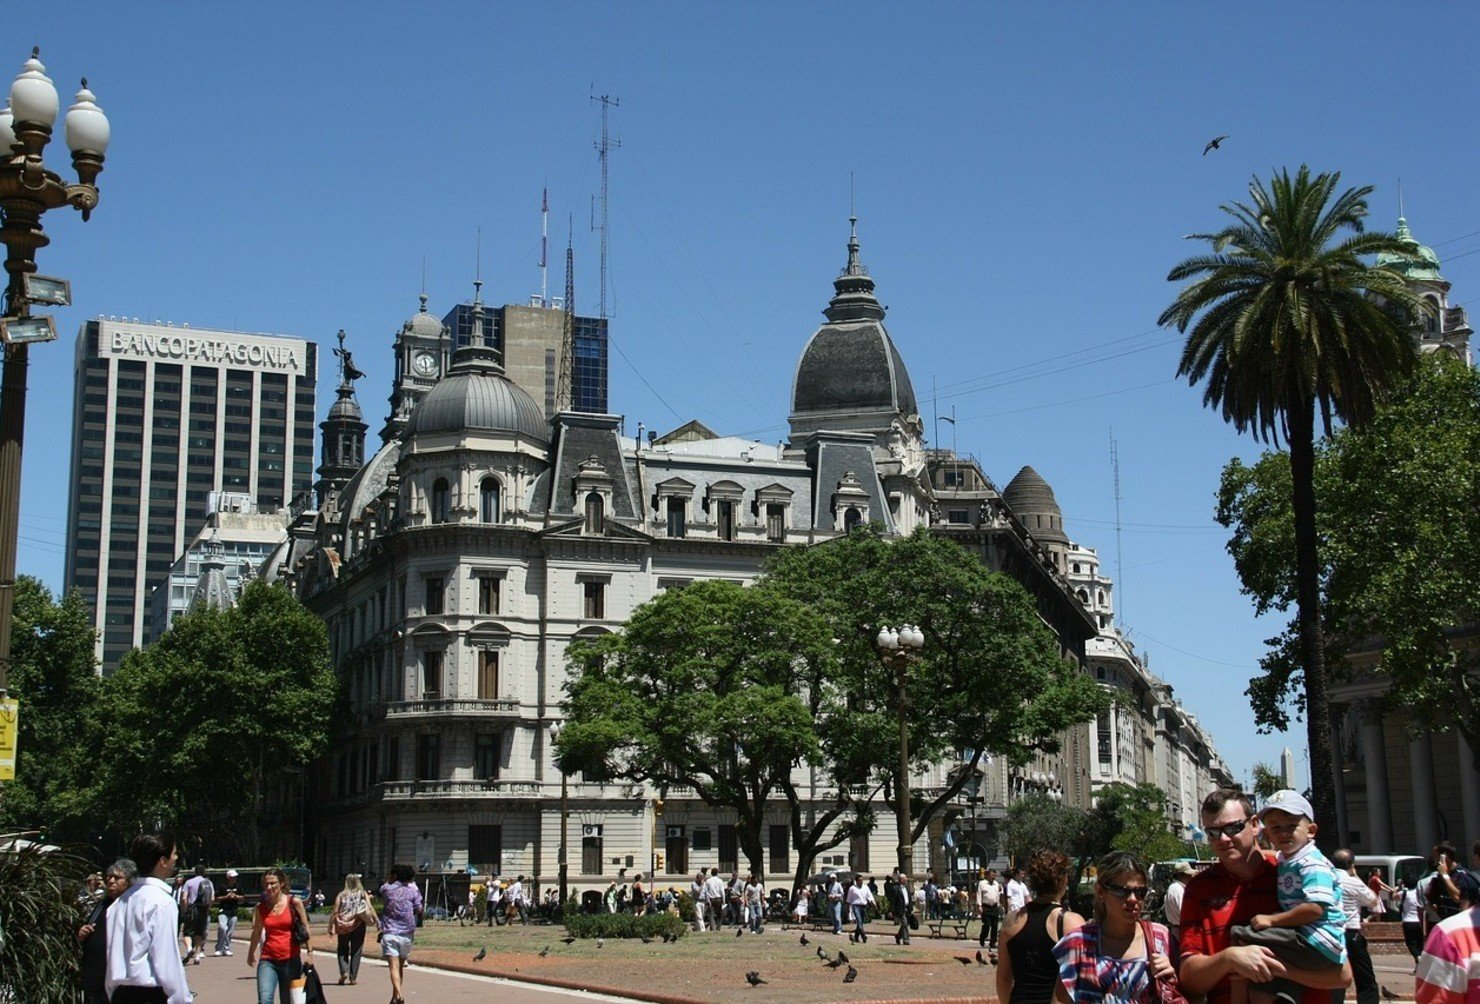 Learn To Speak Spanish In Argentina On Your Gap Year